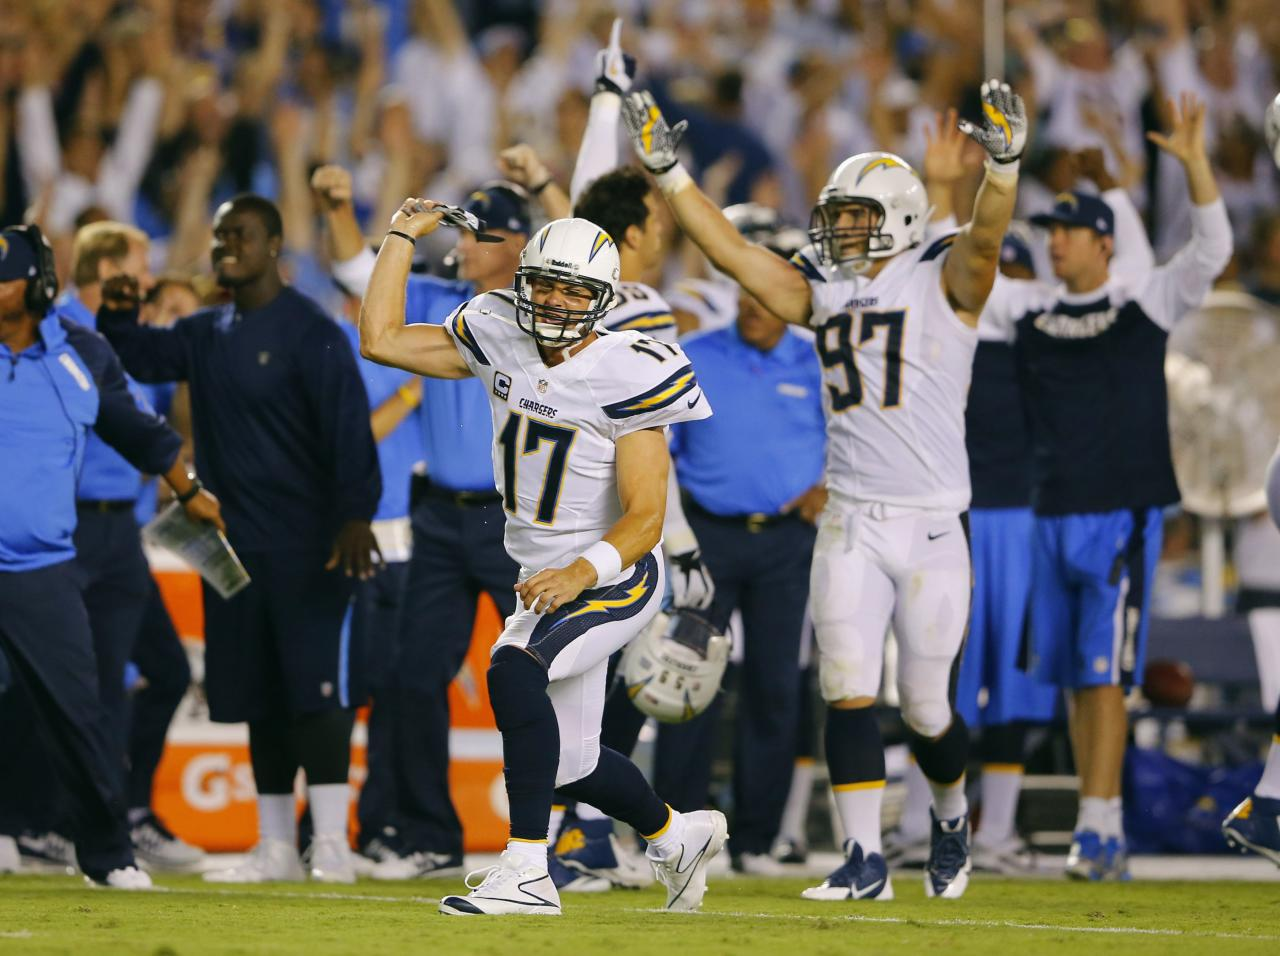 San Diego Chargers quarterback Philip Rivers (17) celebrates a first half touchdown against the Houston Texans during their Monday Night NFL football game in San Diego, California September 9, 2013. REUTERS/Mike Blake (UNITED STATES - Tags: SPORT FOOTBALL)